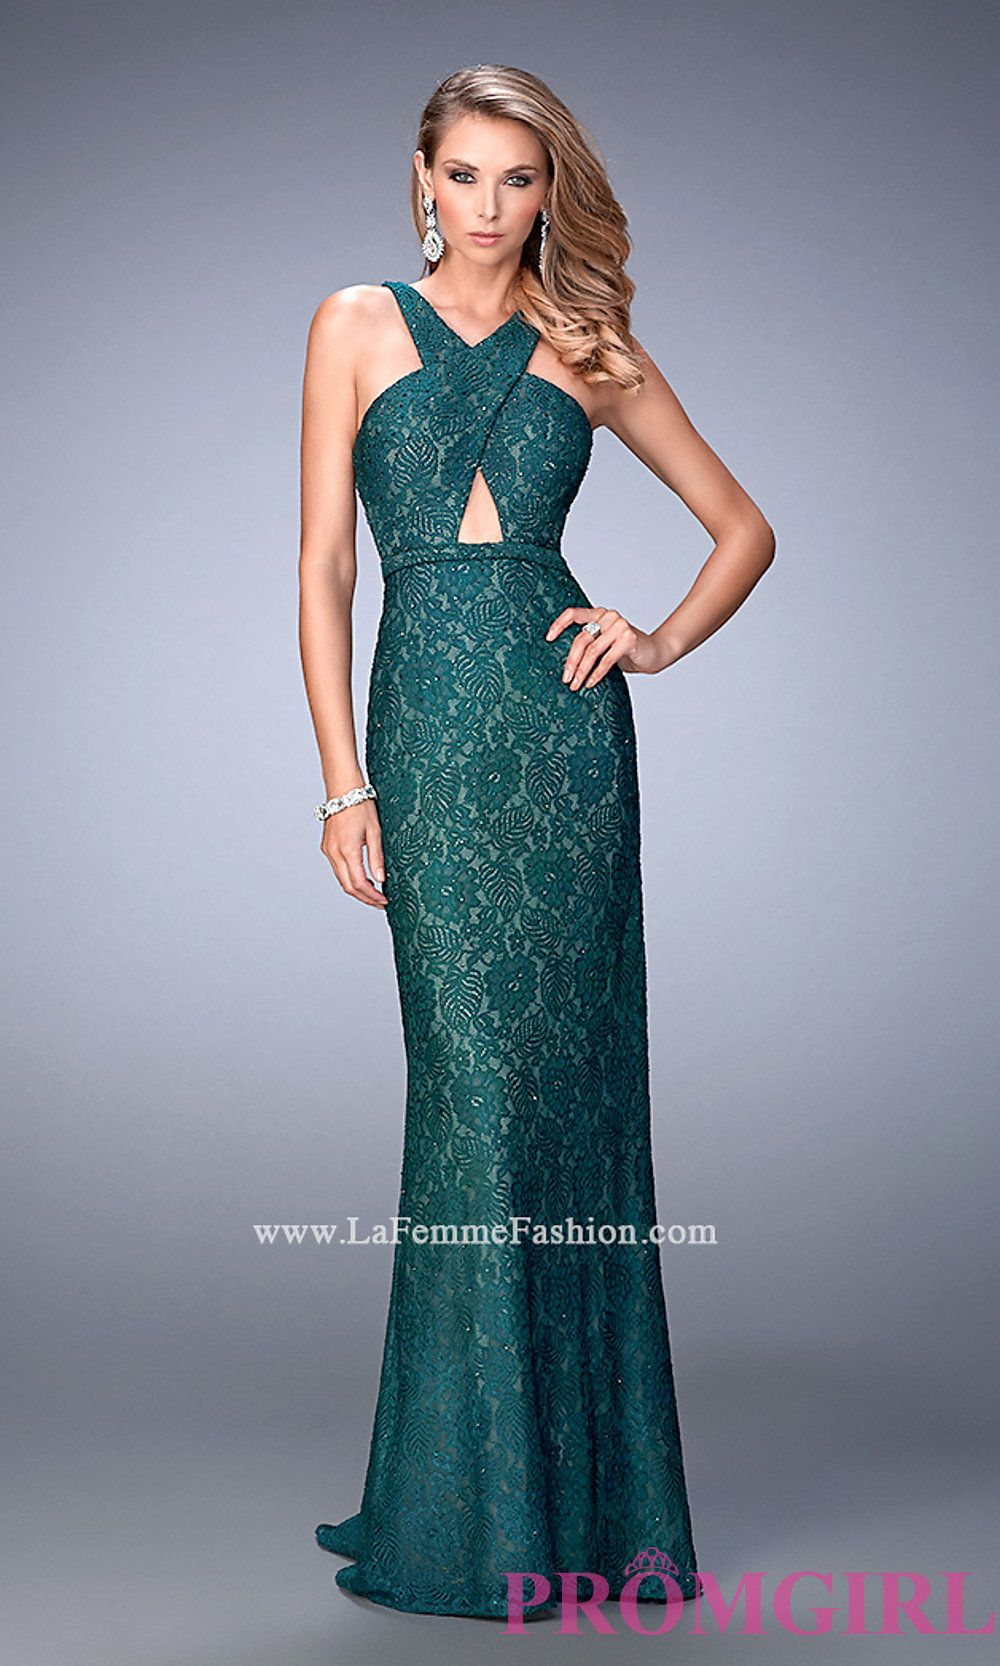 Lace long open back la femme prom dress style lf gown